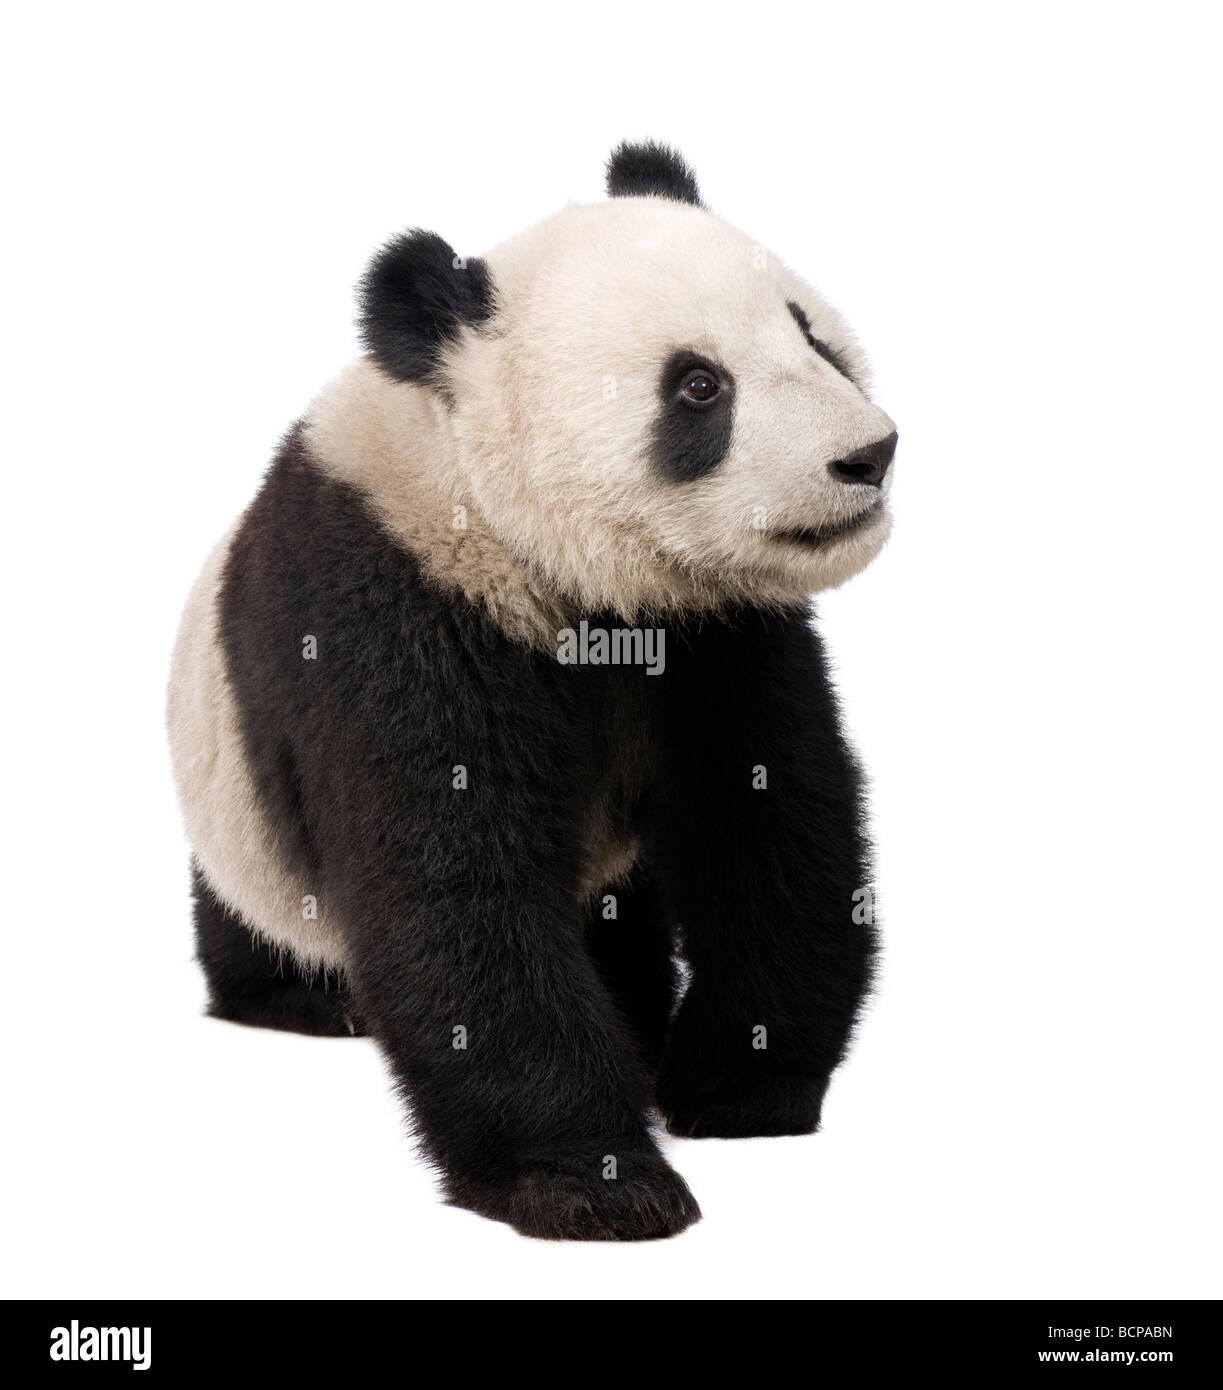 Giant Panda, 18 months, Ailuropoda melanoleuca in front of a white background, studio shot Stock Photo